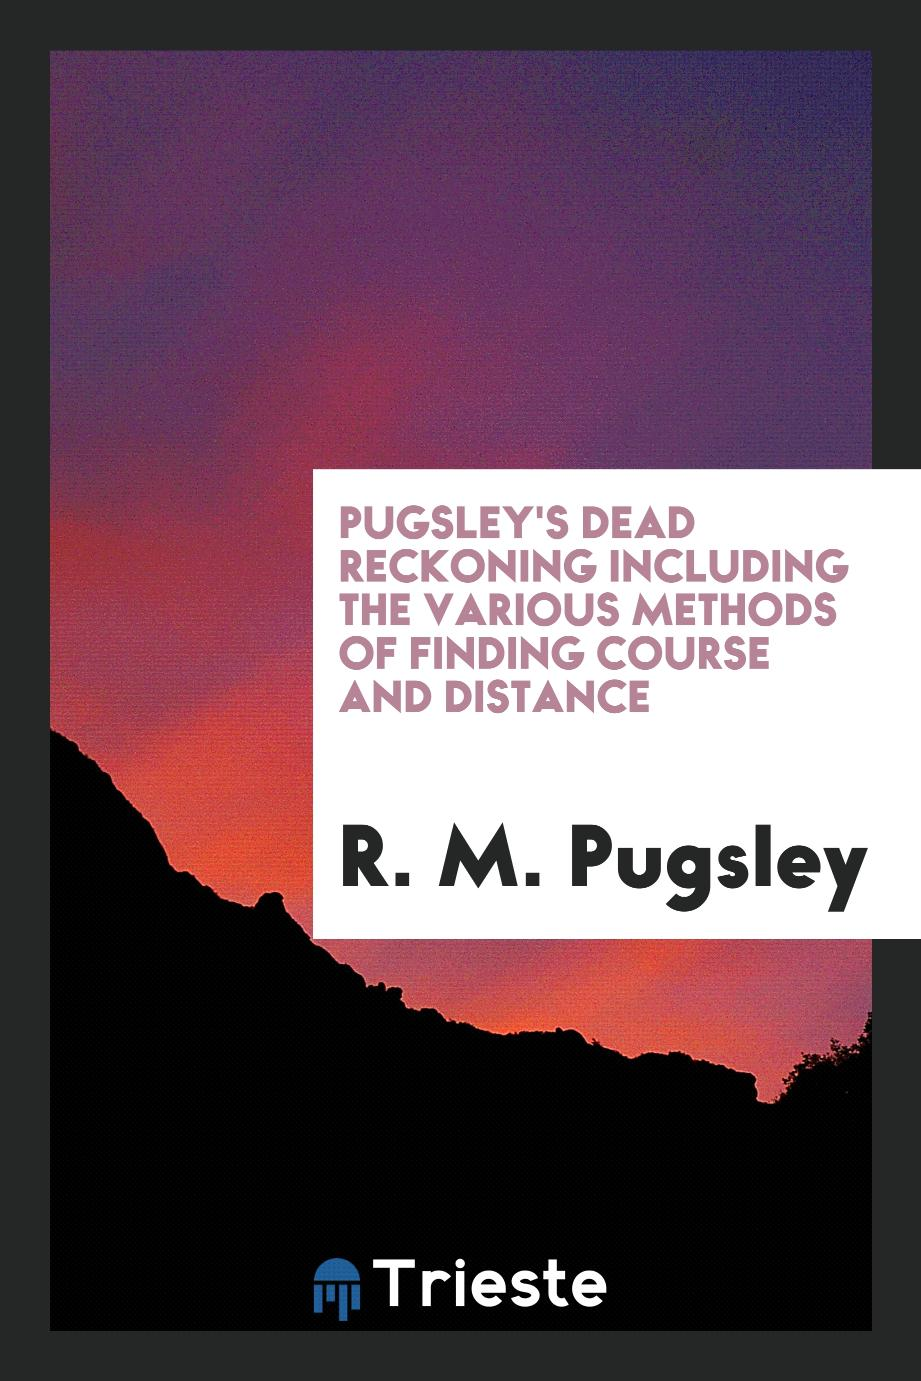 Pugsley's Dead Reckoning Including the Various Methods of Finding Course and Distance